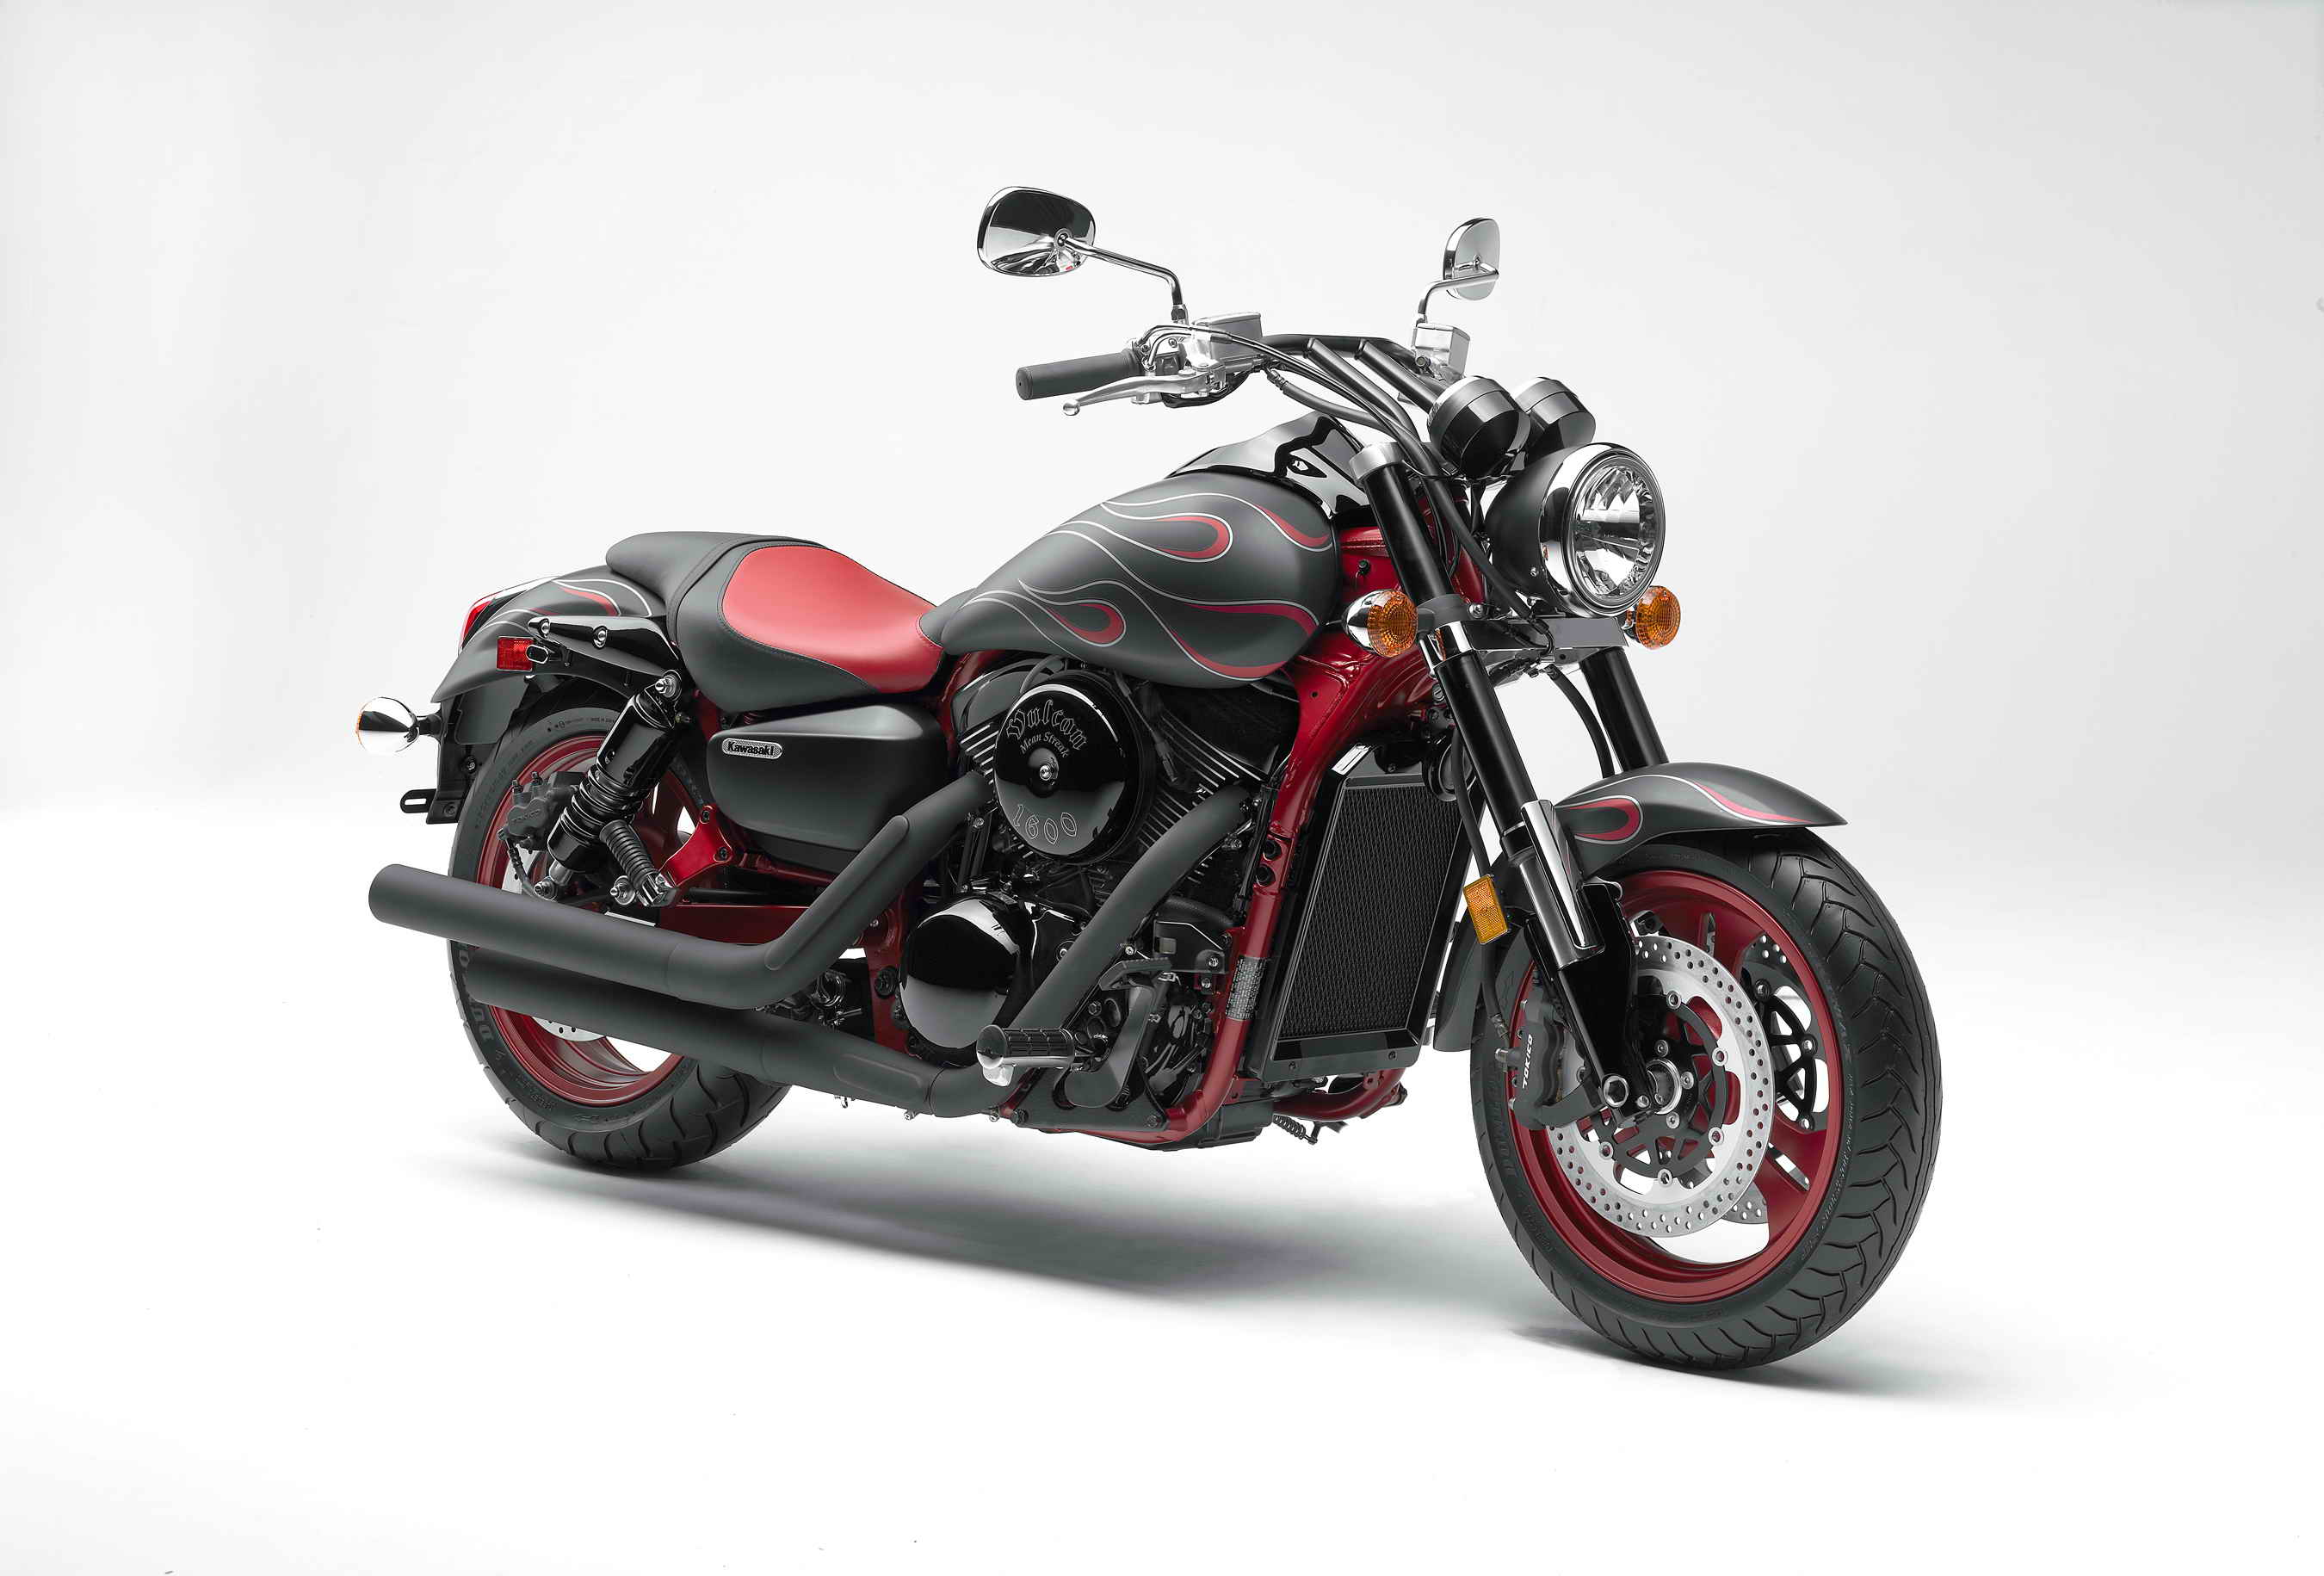 2007 Kawasaki Vulcan 1600 Mean Streak | Top Sd